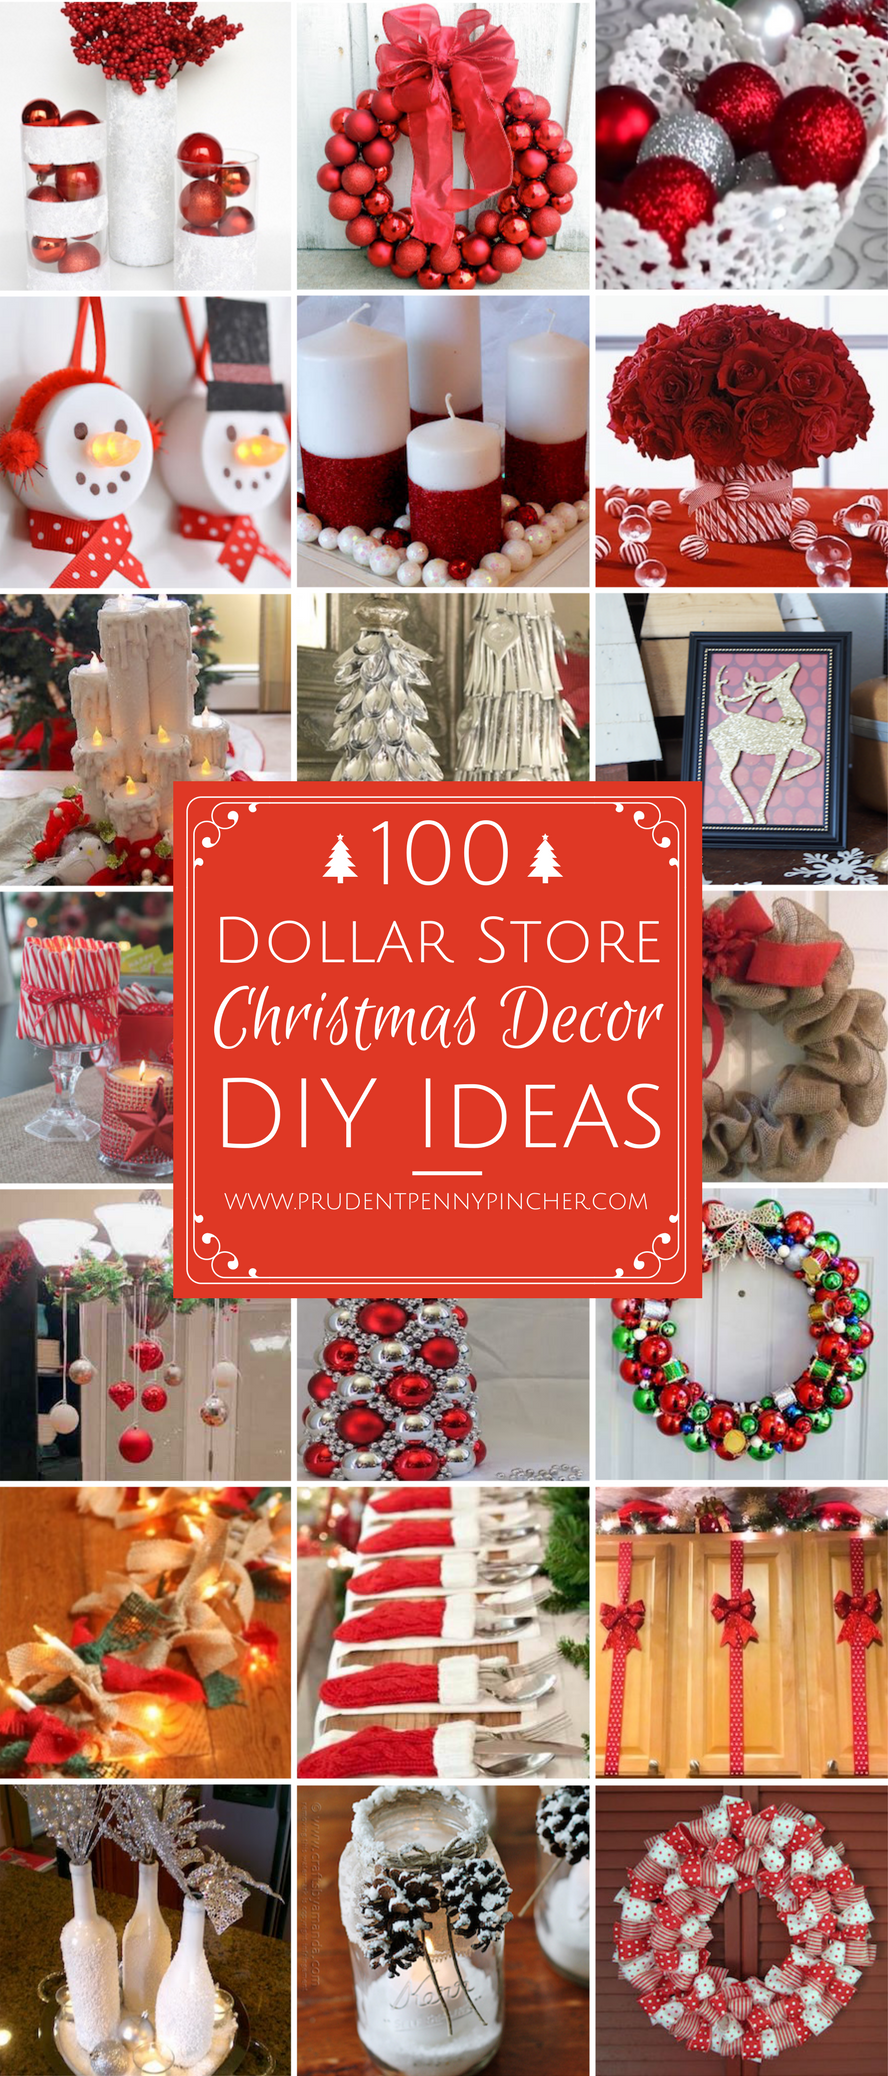 Famous 100 Dollar Store Christmas Decor DIY Ideas - Prudent Penny Pincher WO18